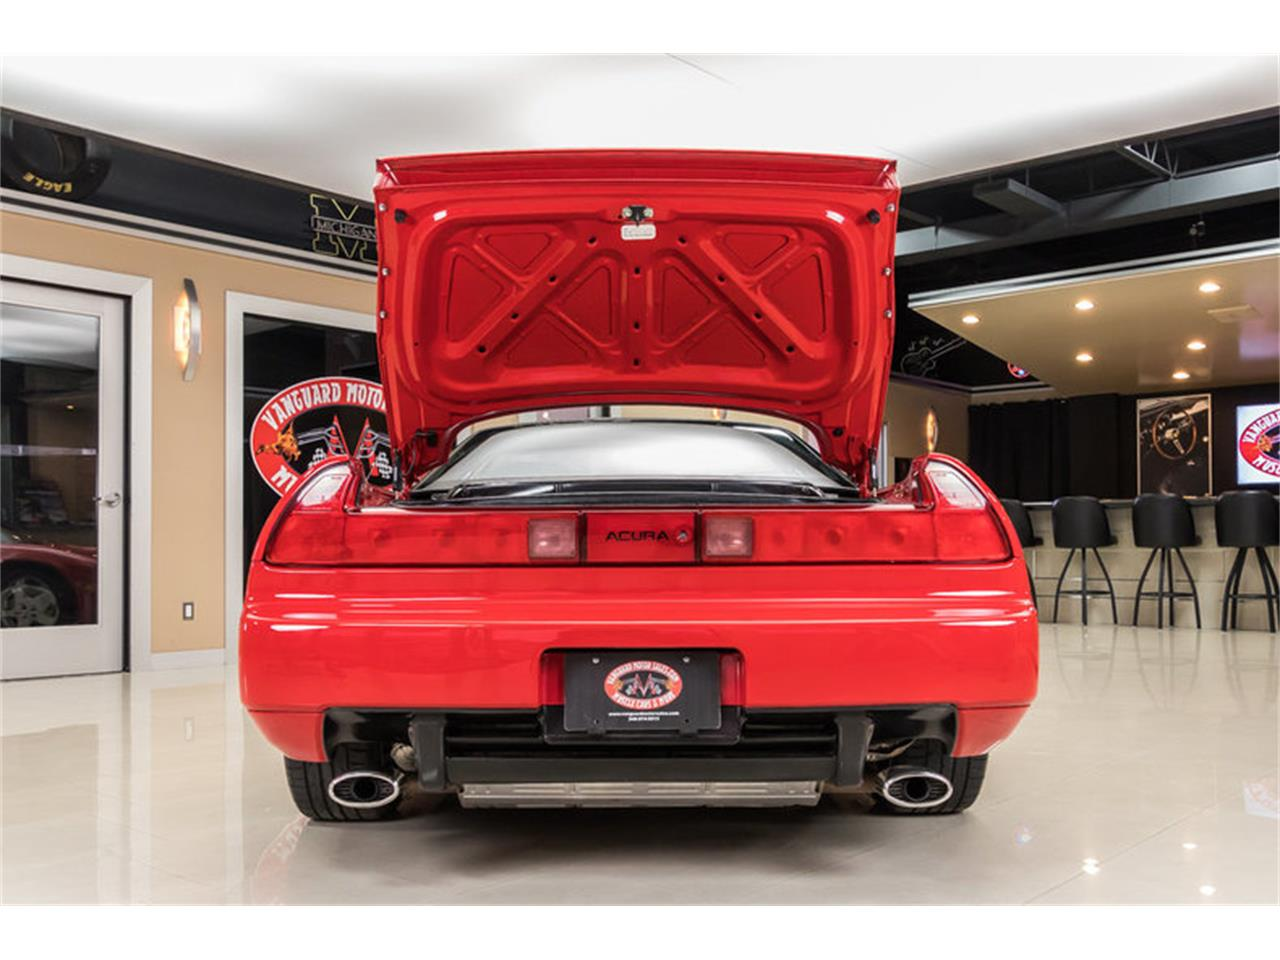 Large Picture of '92 Acura NSX located in Michigan - $69,900.00 - MZ8C